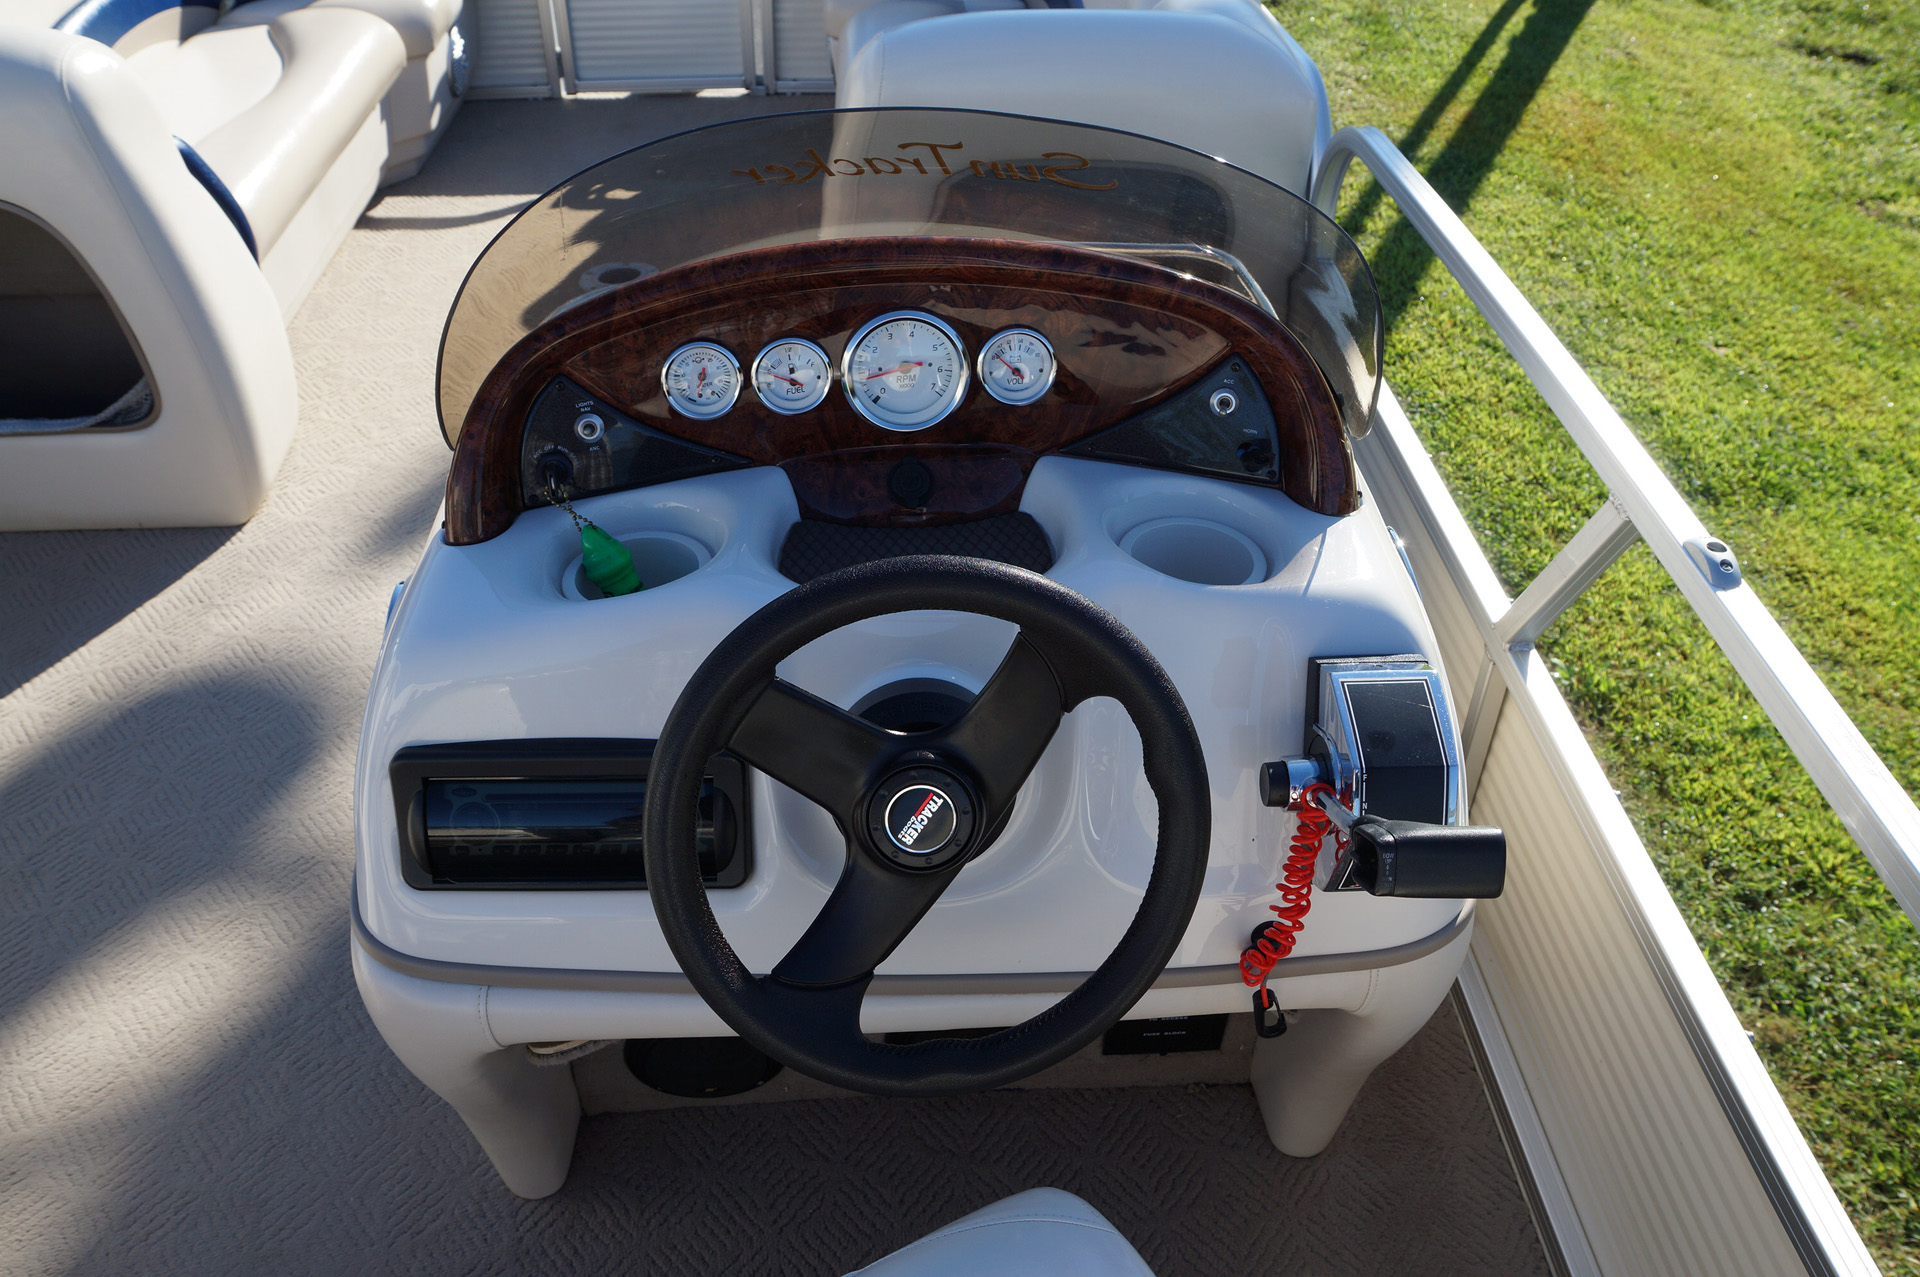 2010-tracker-party-barge-21-18